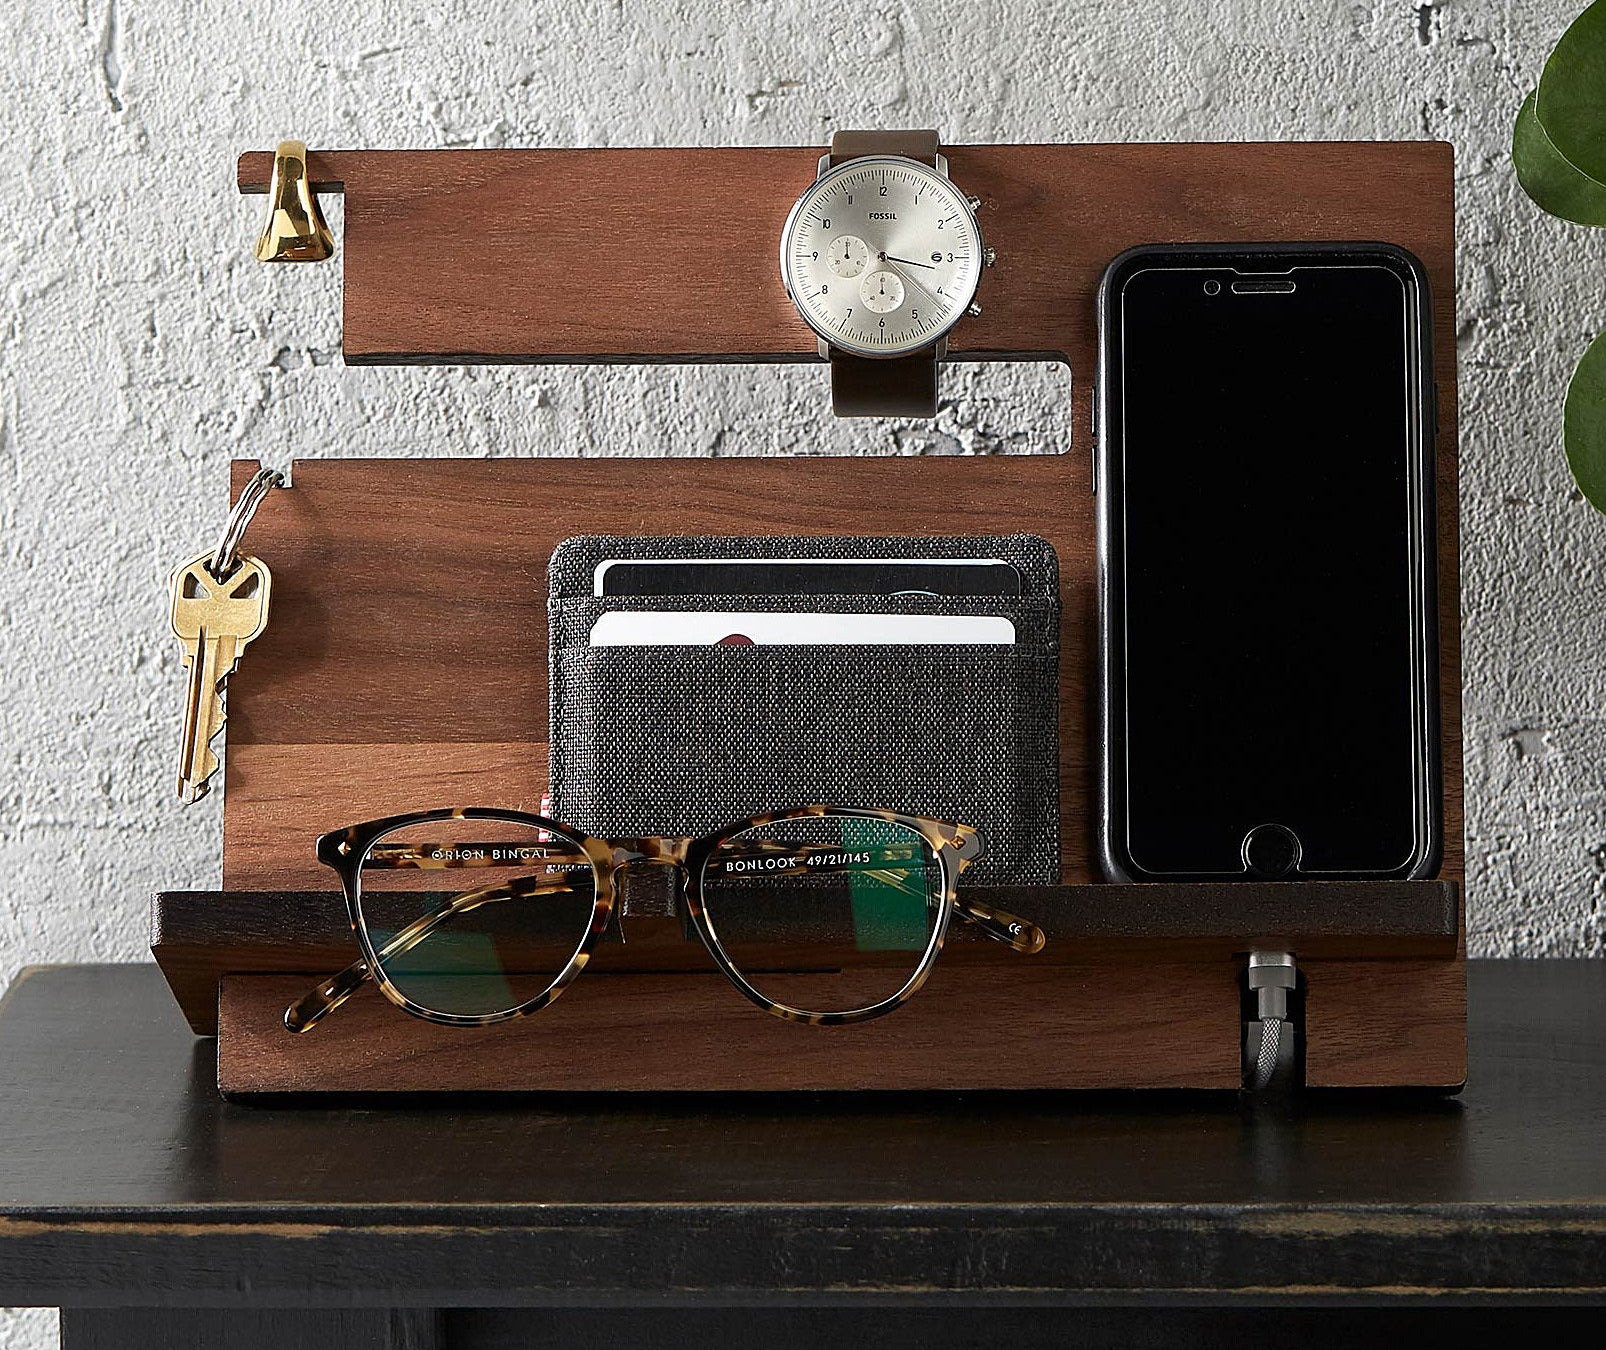 An upright wooden tray with a phone and wallet leaning against it